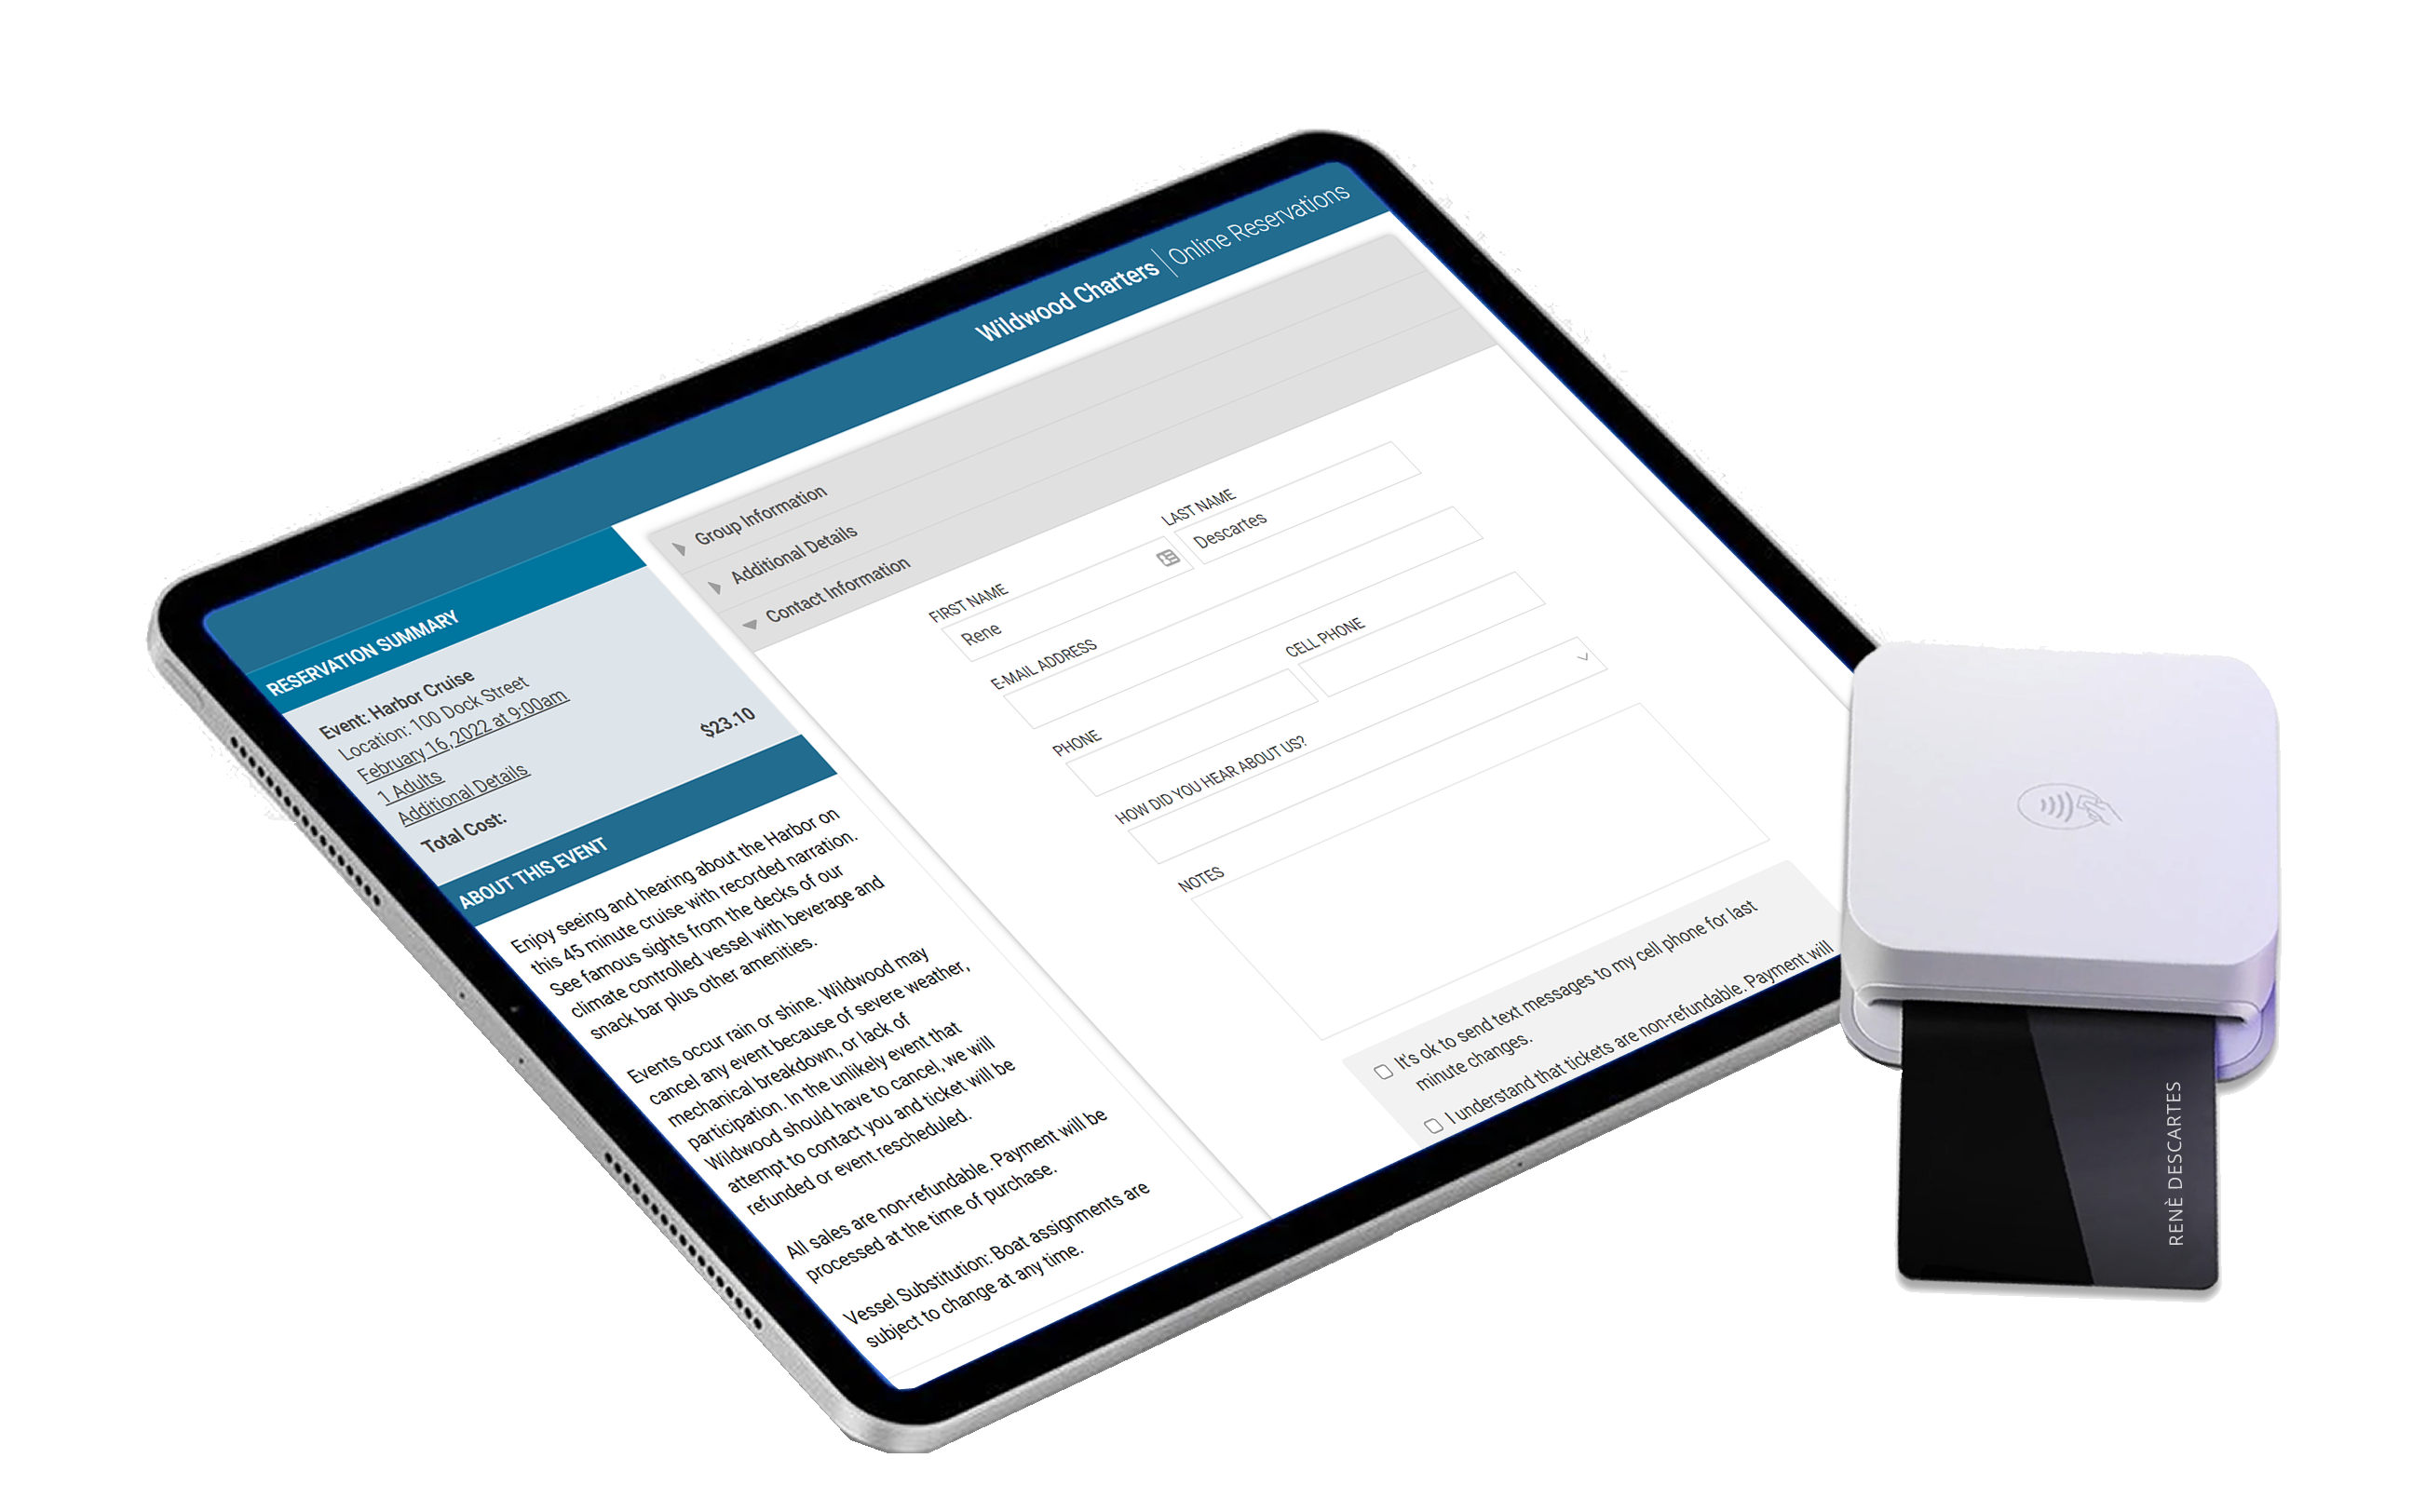 Kiosk App for Self-Service Booking | Starboard Suite Reservation System